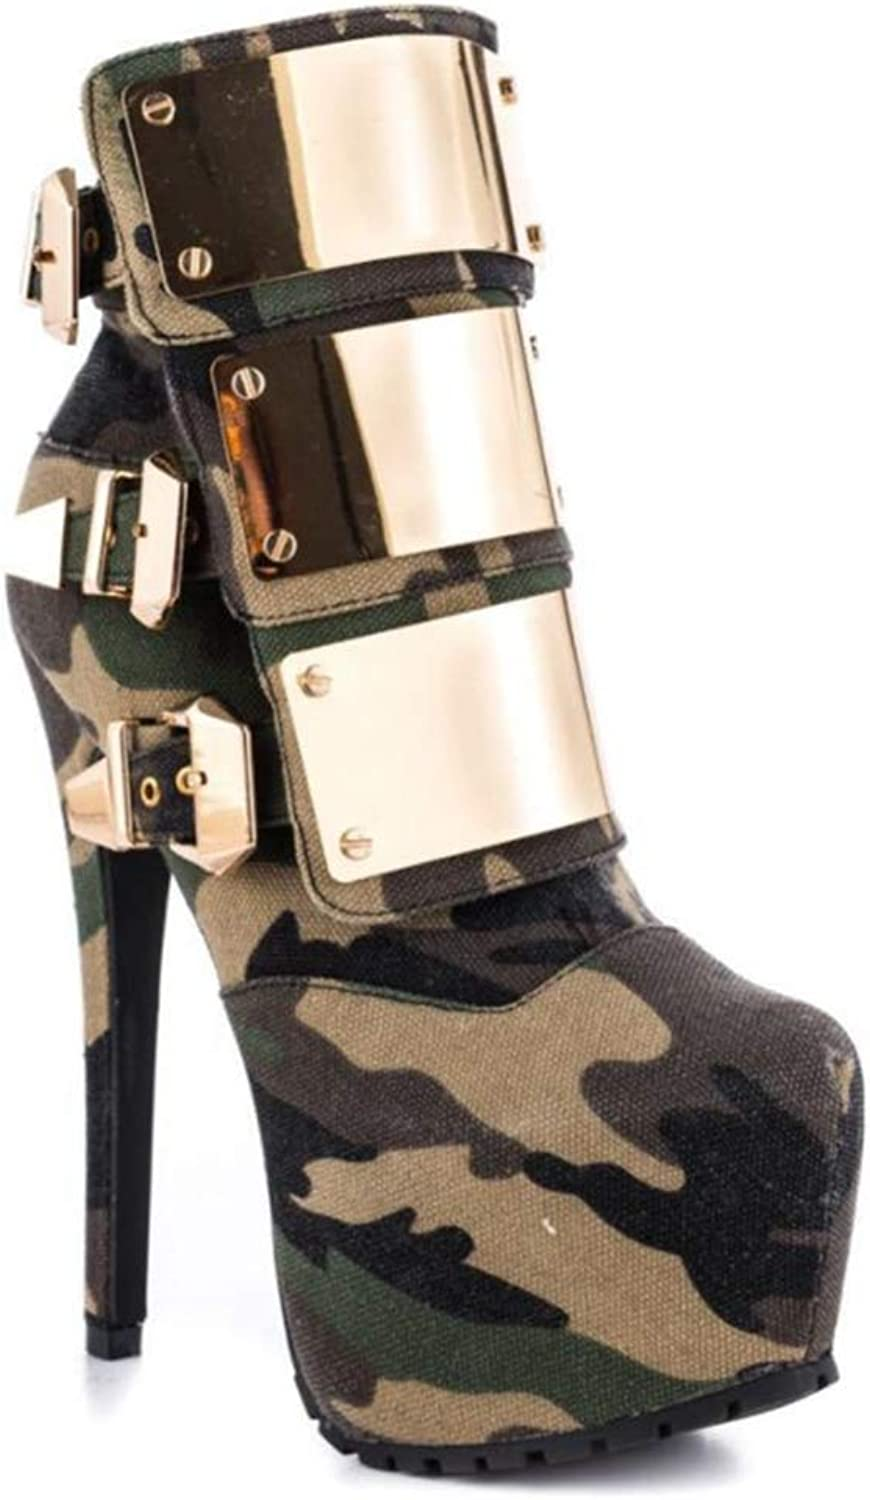 Shiney Women's Boots Waterproof Platform High Heel Shiny Metal Buckle Stiletto Heels Camouflage Ankle Boots,Multi-colord-34